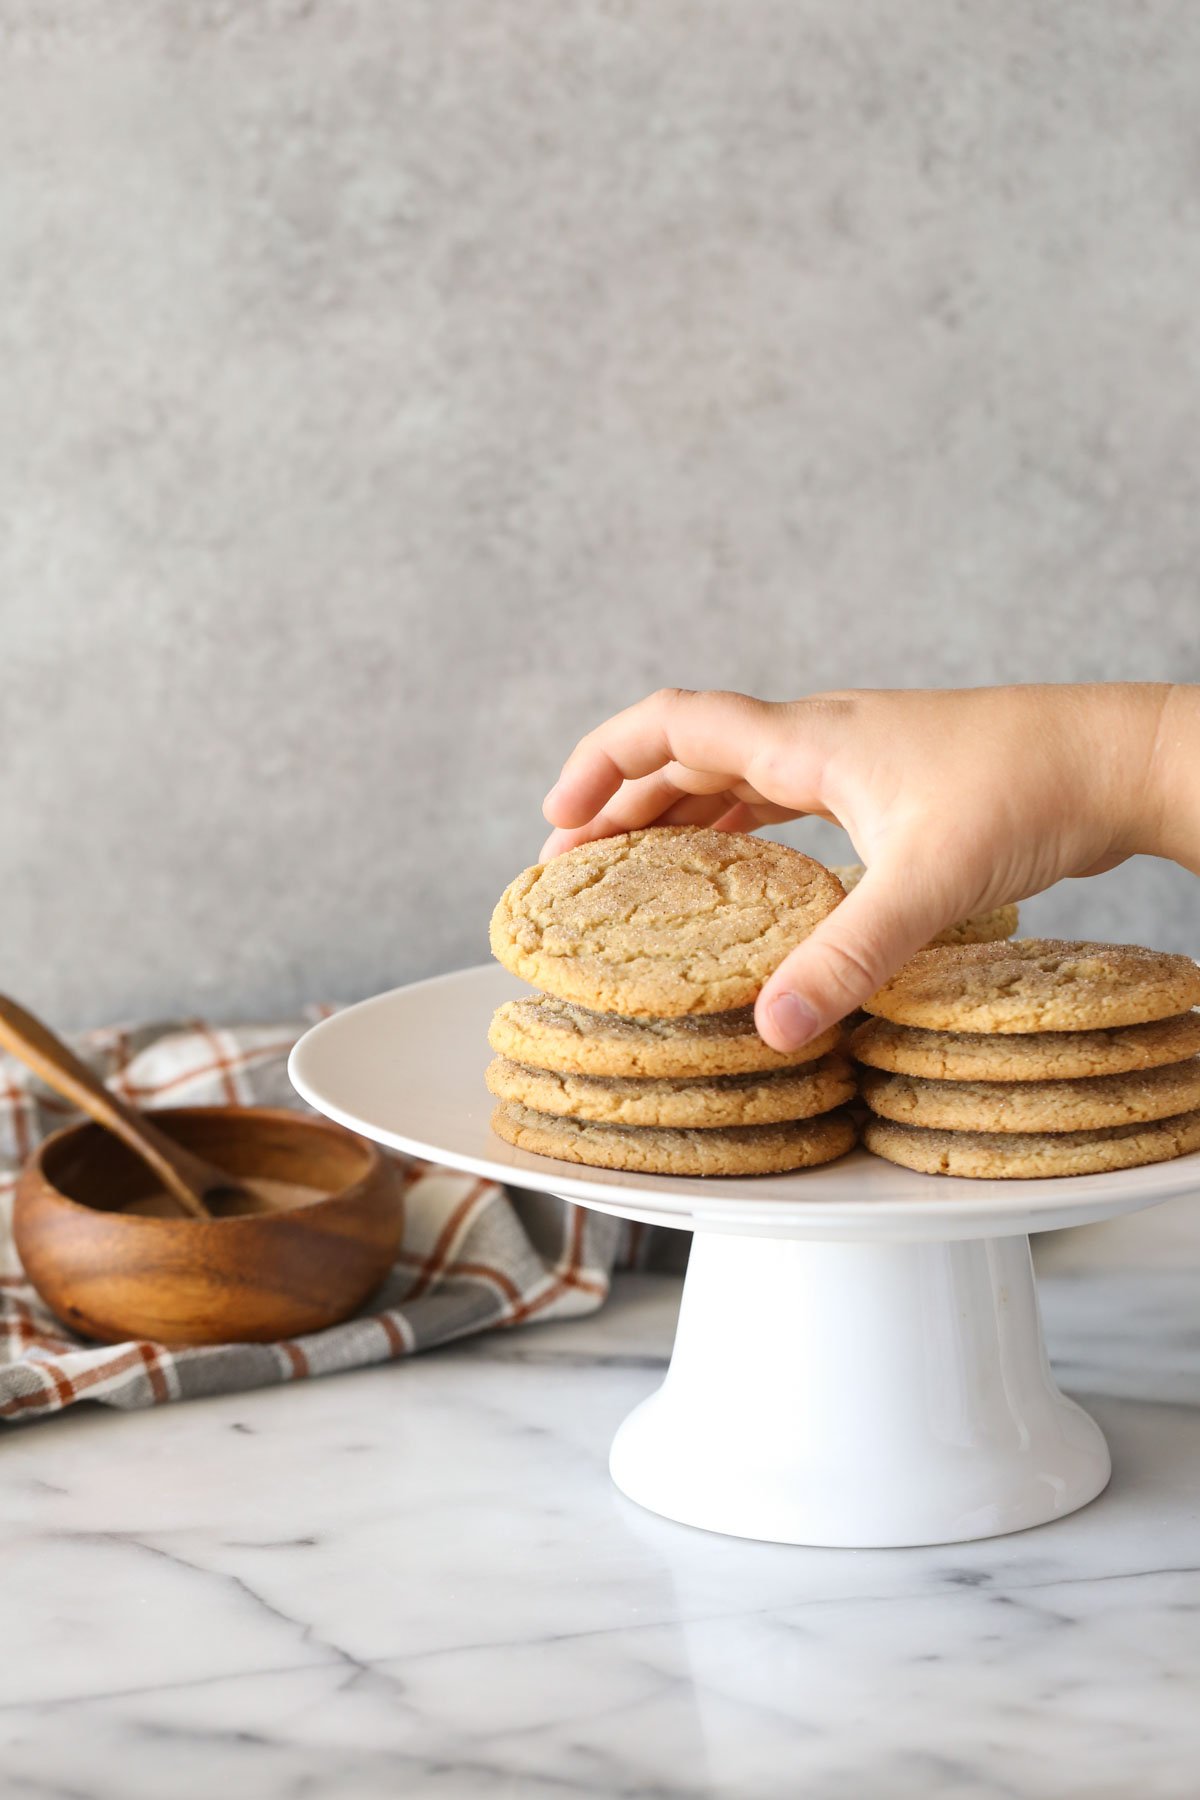 Brown Butter Snickerdoodles stacked on a white cake stand, with a hand picking up the cookie on top of one of the stacks, and a small wood bowl of cinnamon sugar in the background.